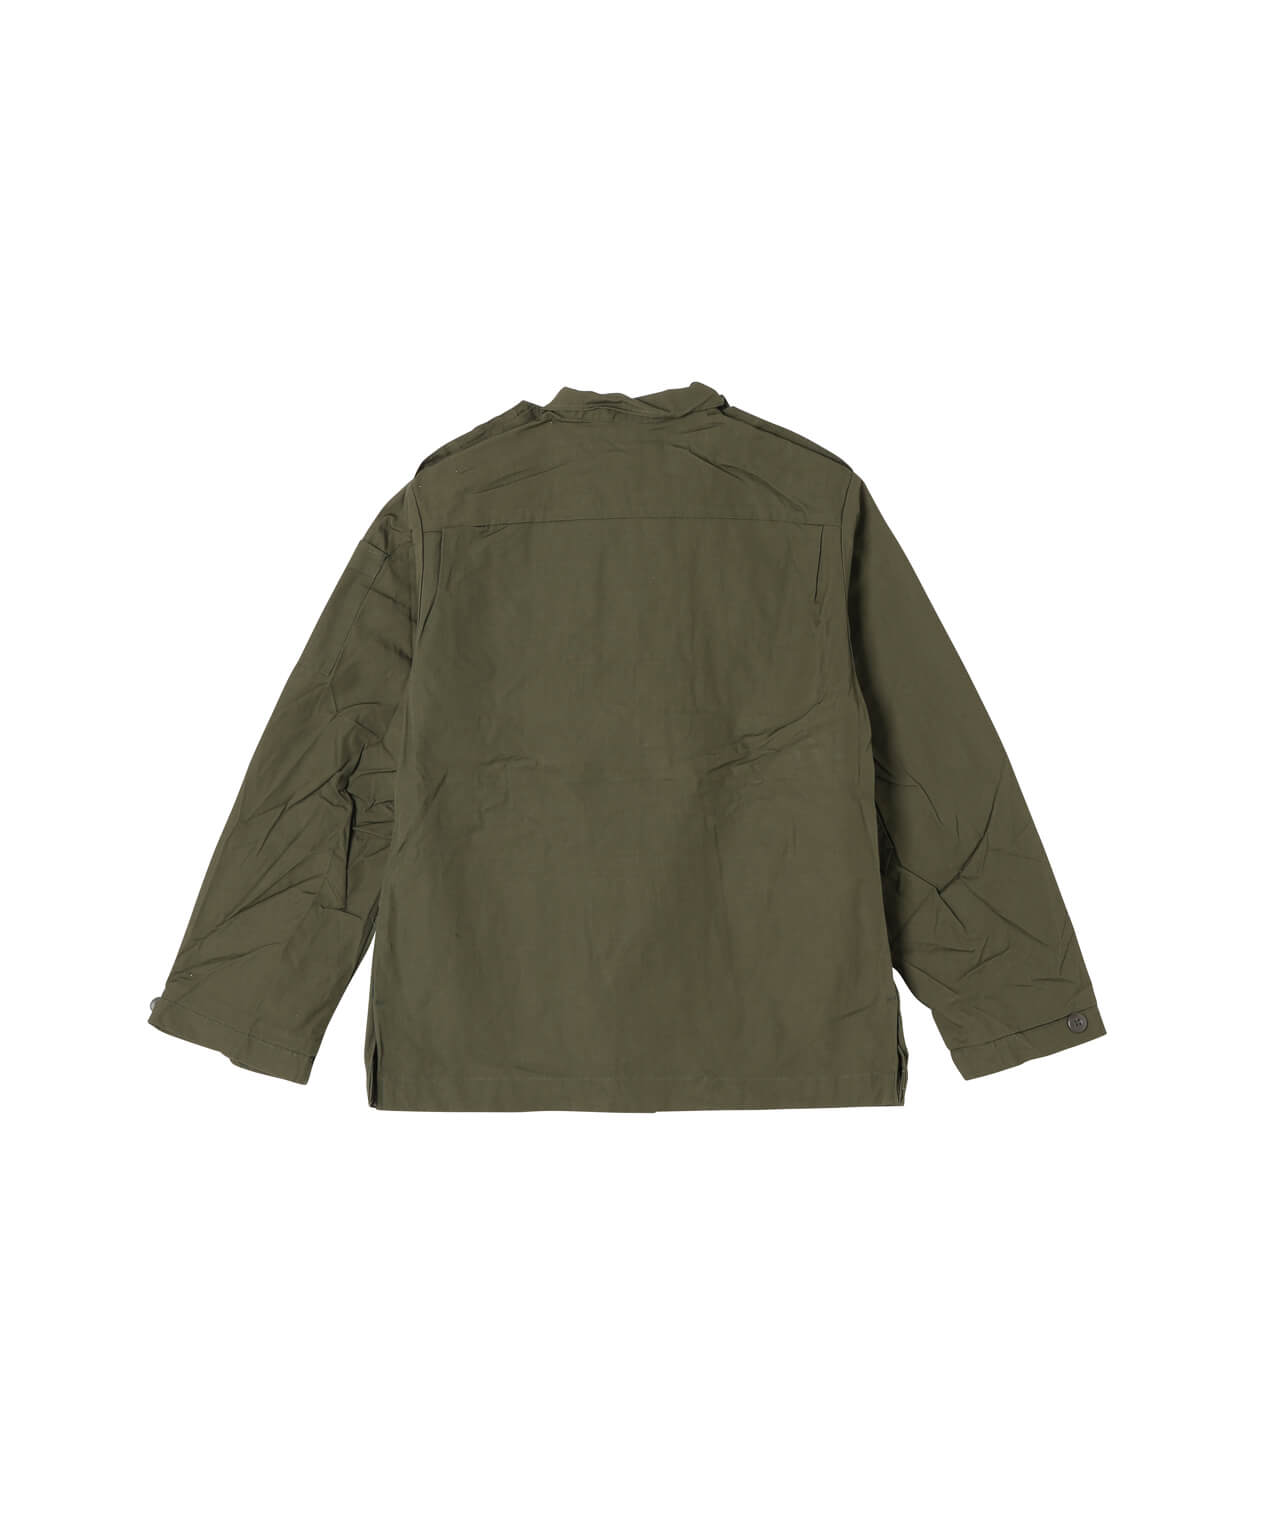 USED/US MILITARY W's RIPS TOP SHIRT DEAD STOCK 詳細画像 OLIVE 2